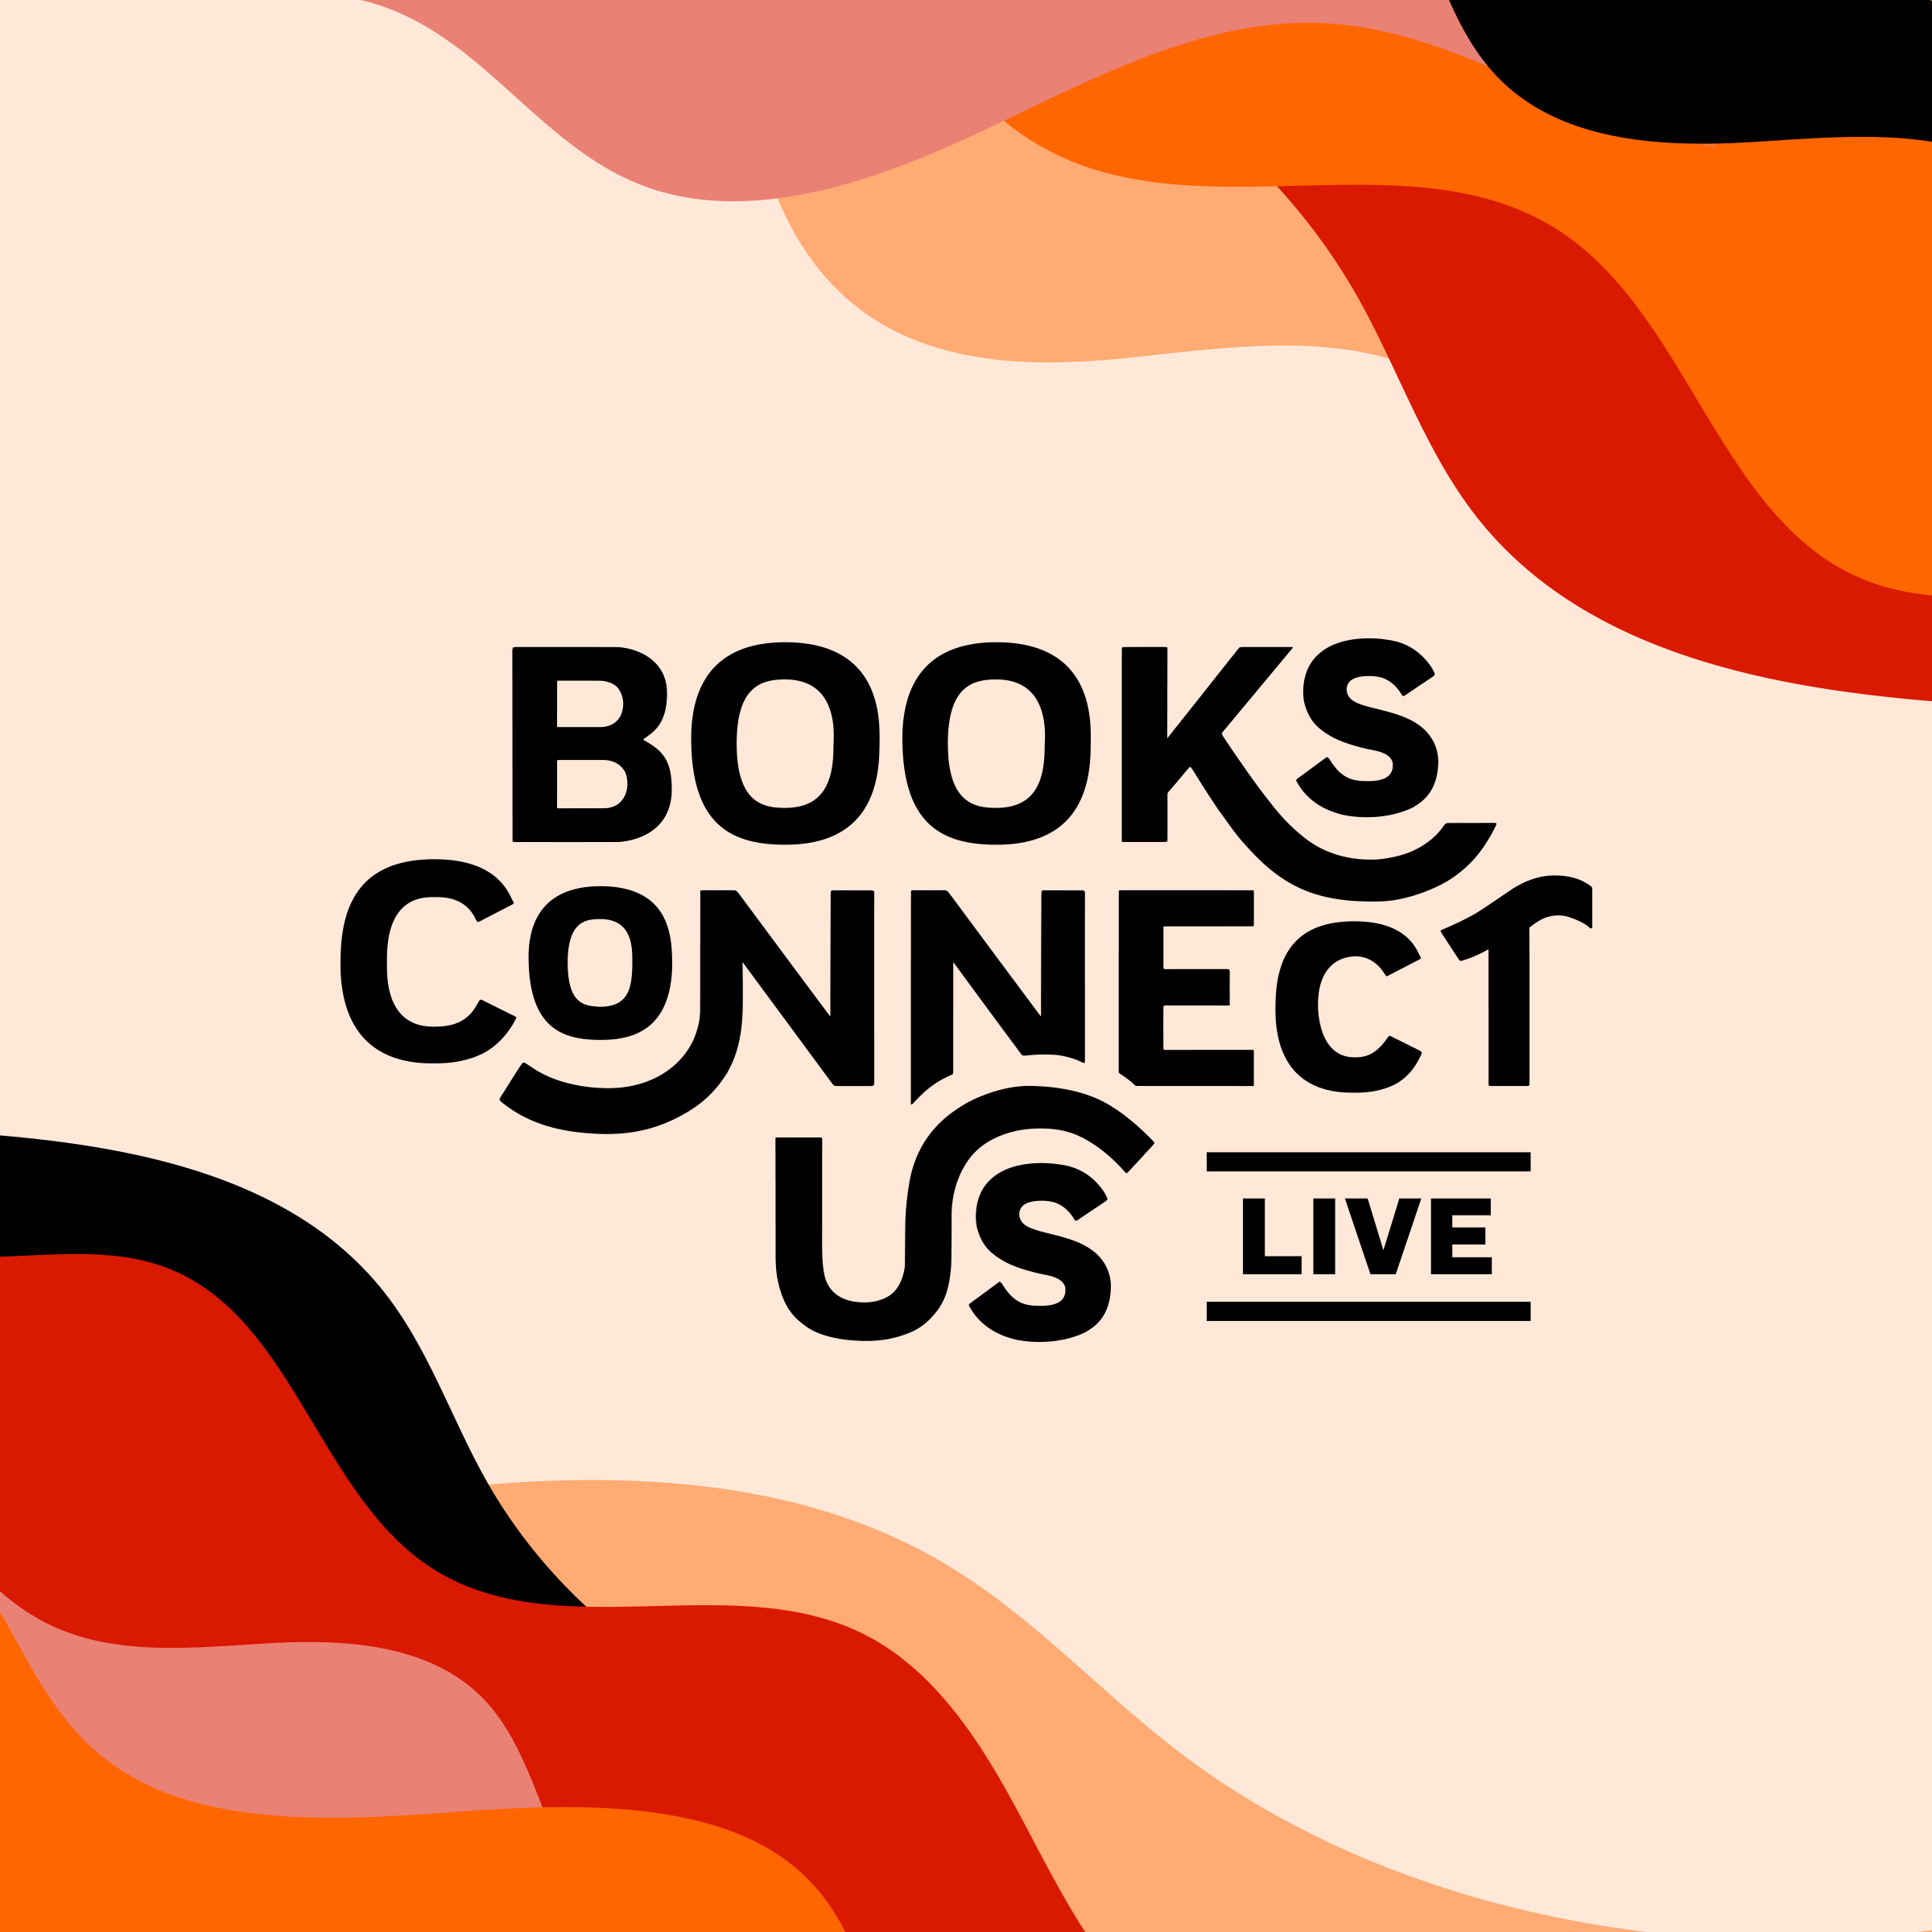 Books Connect Us Live 10/19-11/1